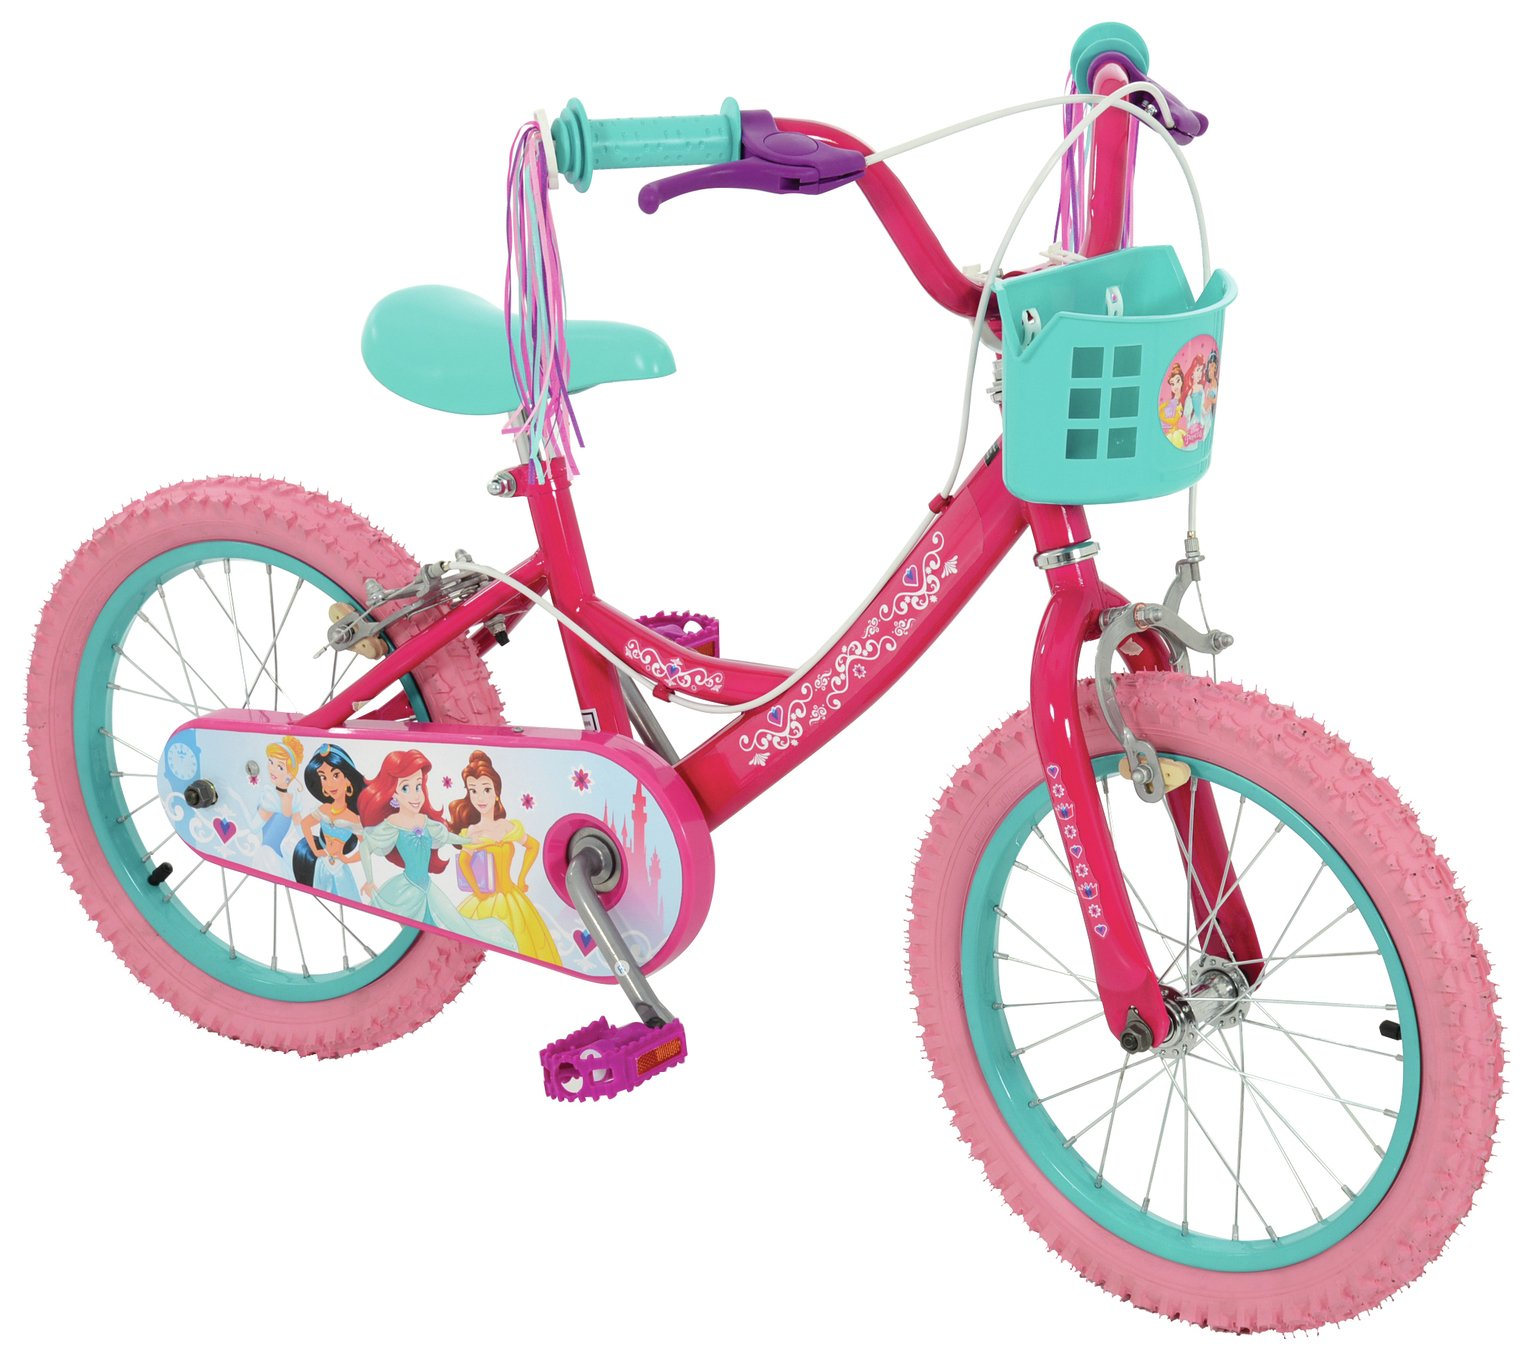 Disney Princess 16 Inch Kids Bike - Pink from Disney Princess